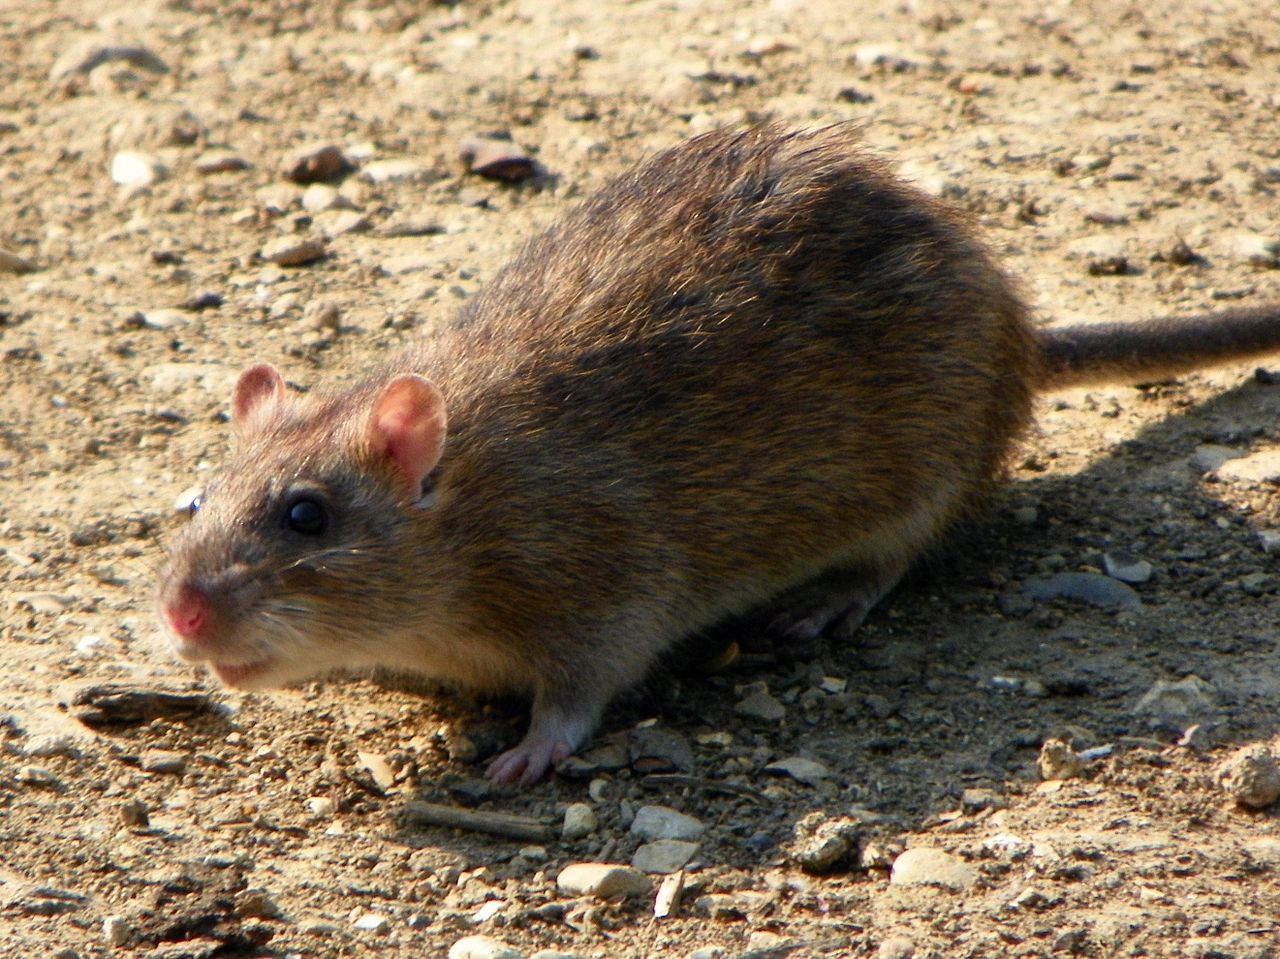 1280px-Rattus_norvegicus_-Fairlands_Valley_Park,_Stevenage,_England-8